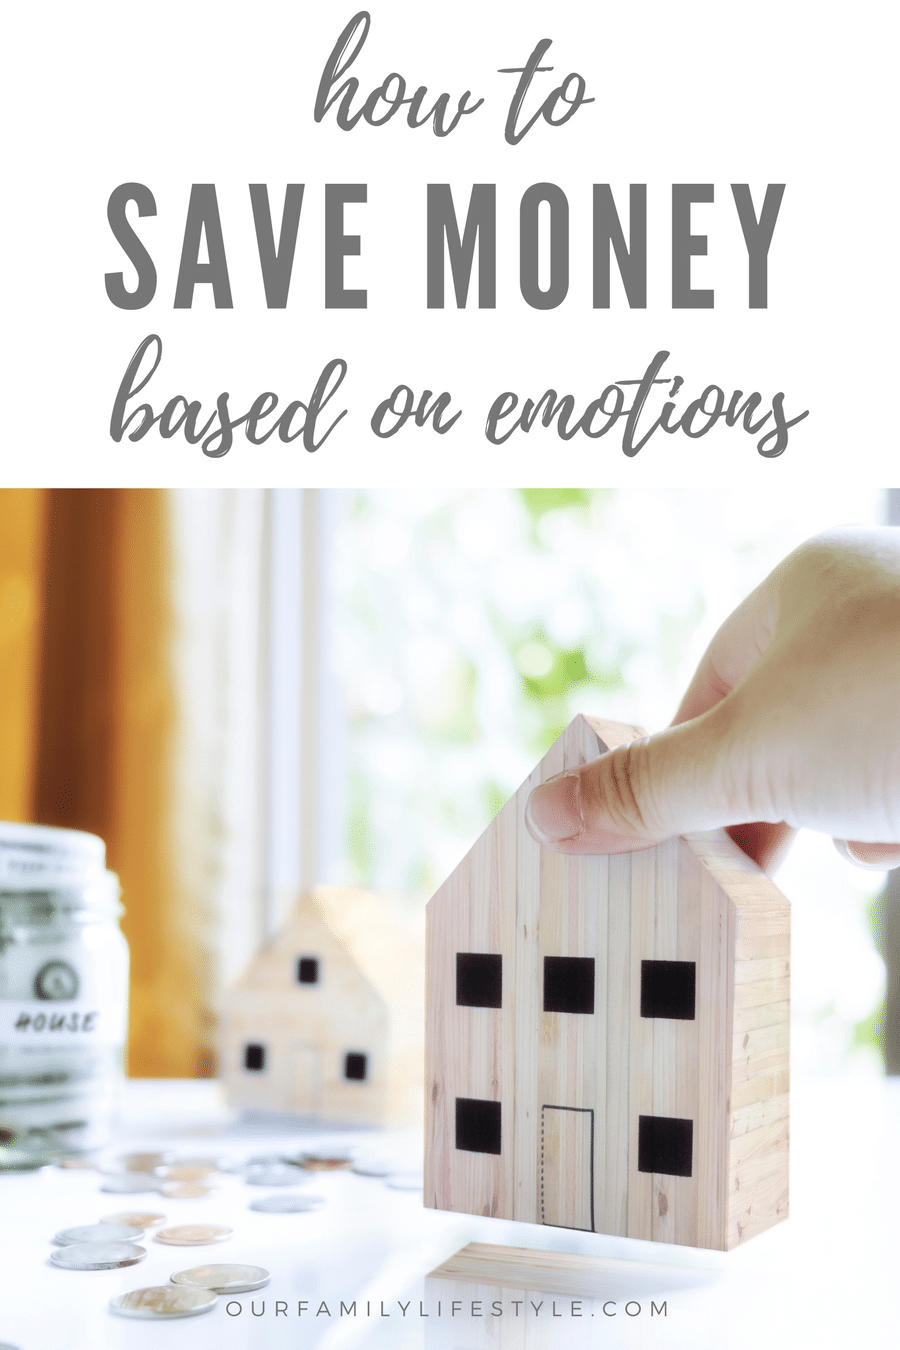 How to save money by harnessing positive emotions.